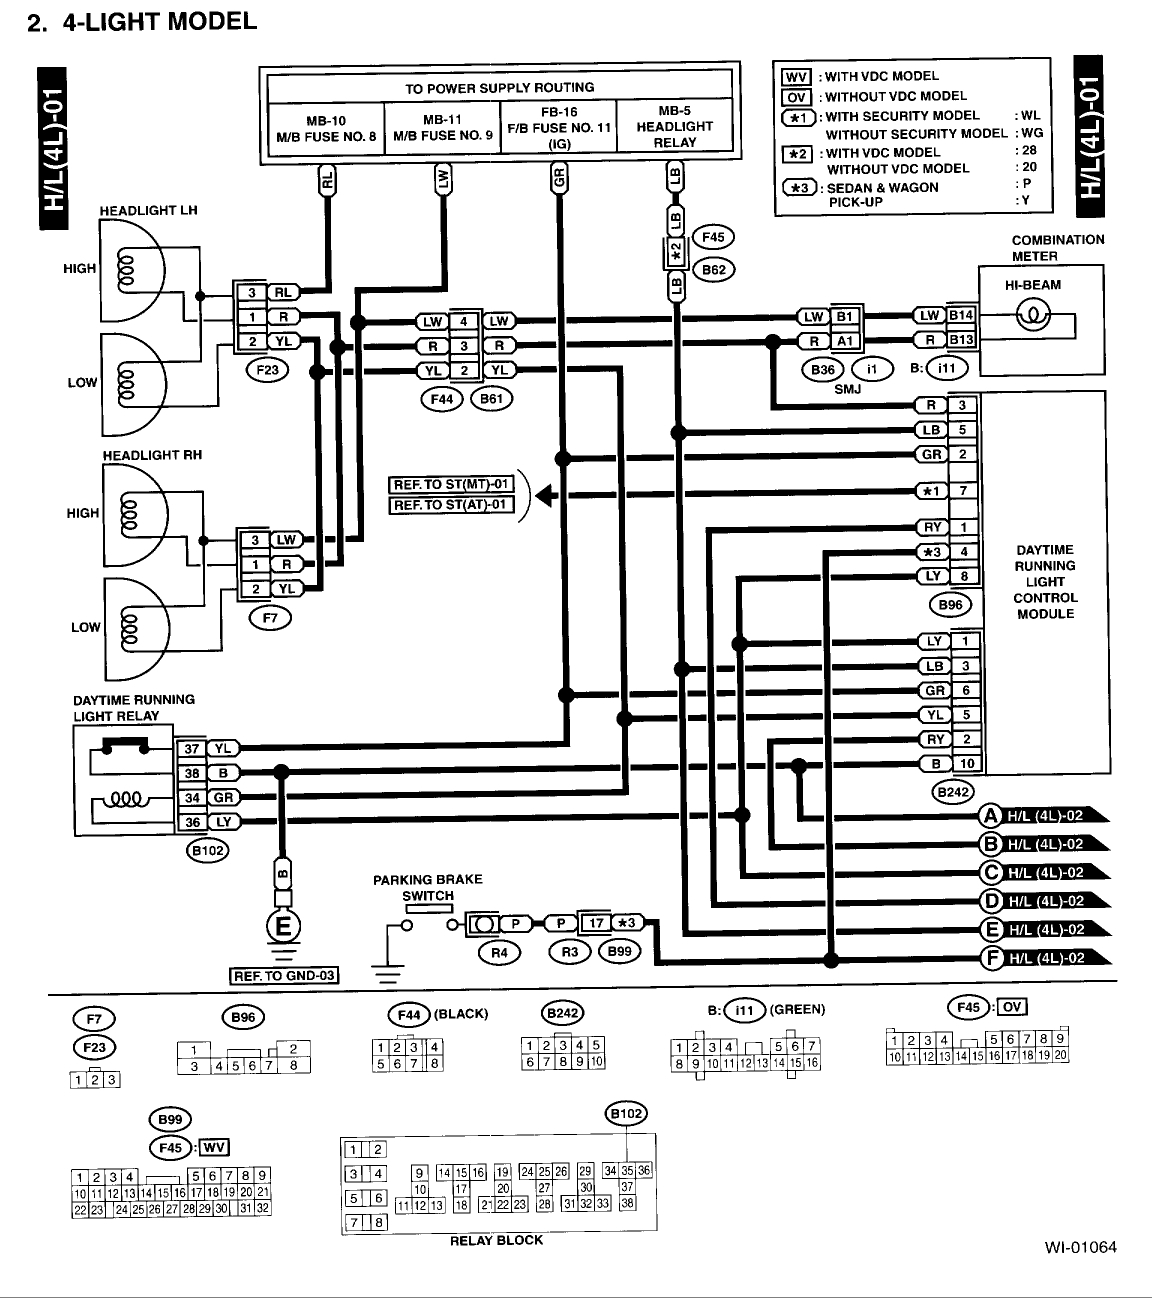 hight resolution of 2010 subaru impreza horn diagram wiring diagram list 2010 subaru impreza horn diagram wiring diagrams long